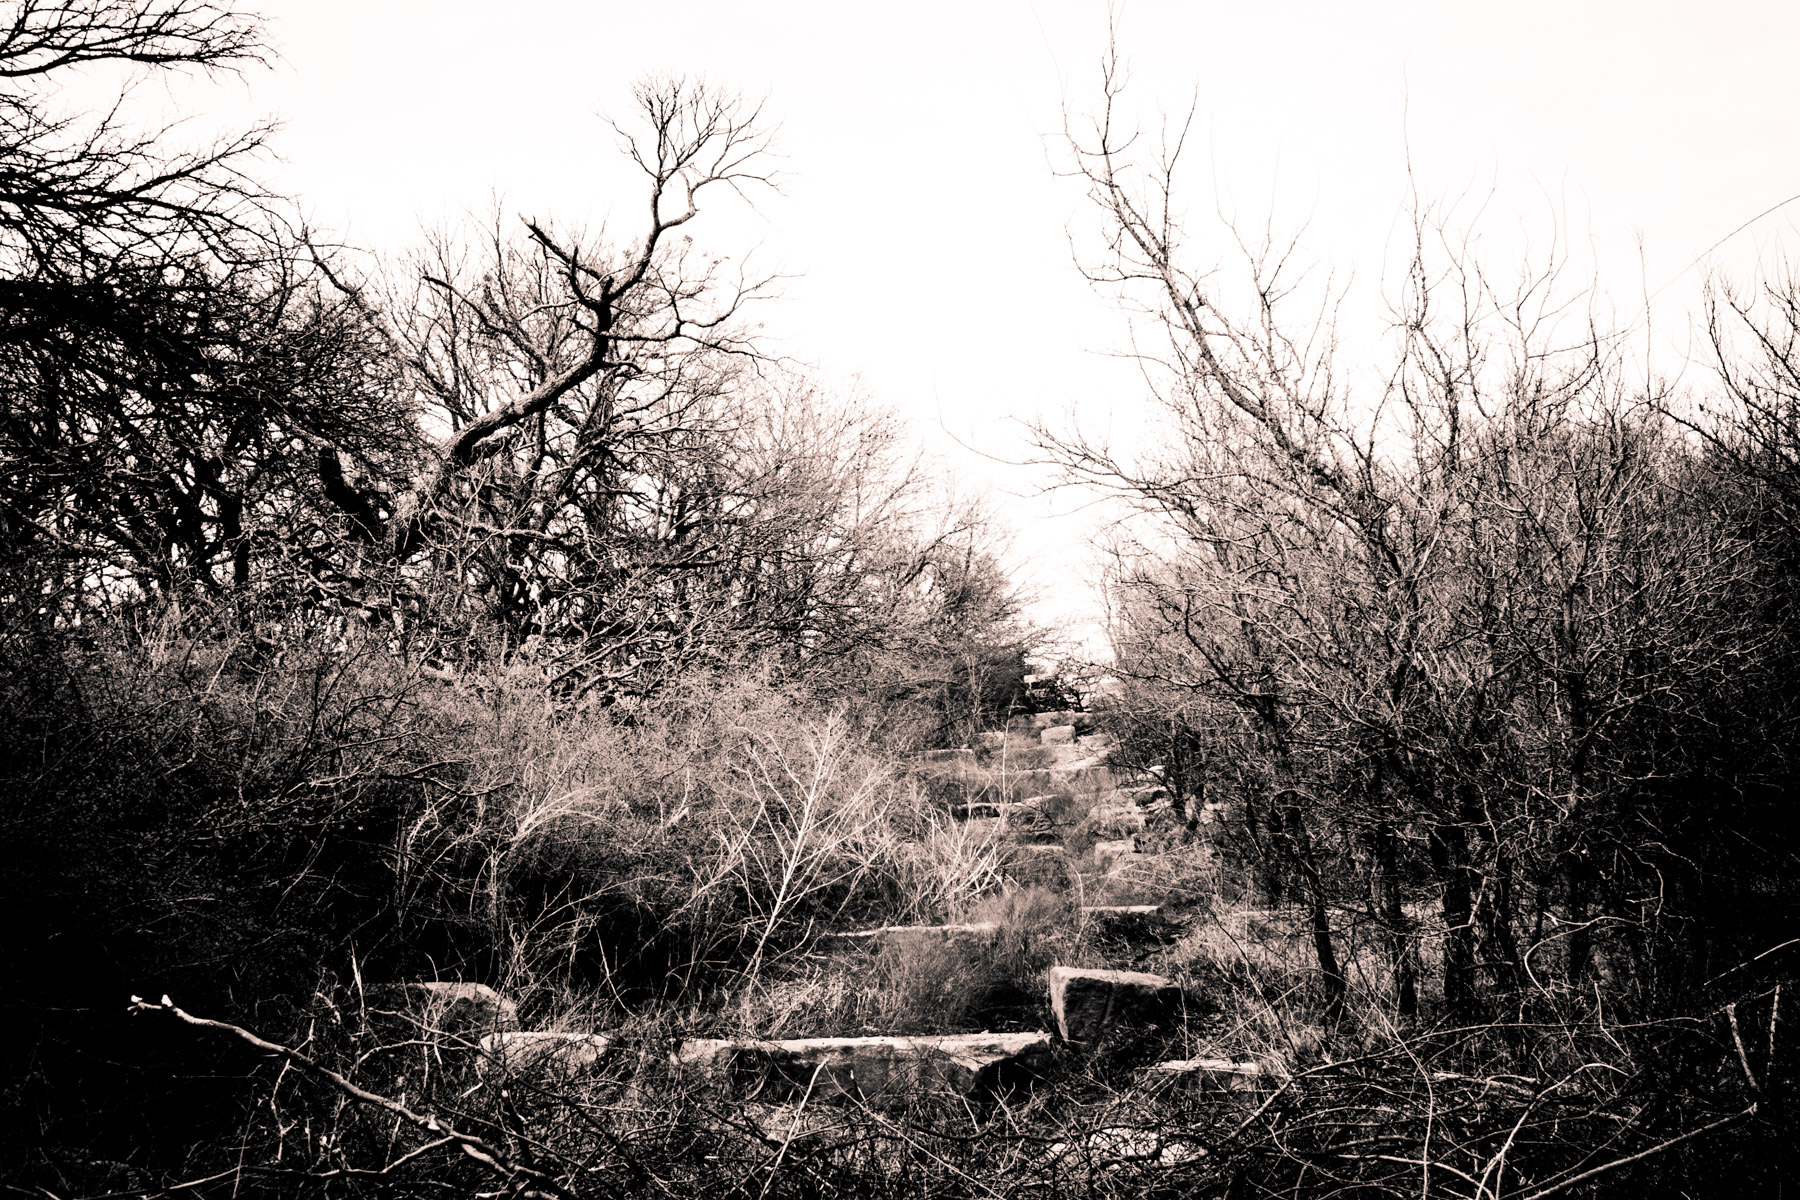 A rock-strewn pathway overgrown with grass and brush at Arbor Hills Nature Preserve in Plano, Texas.